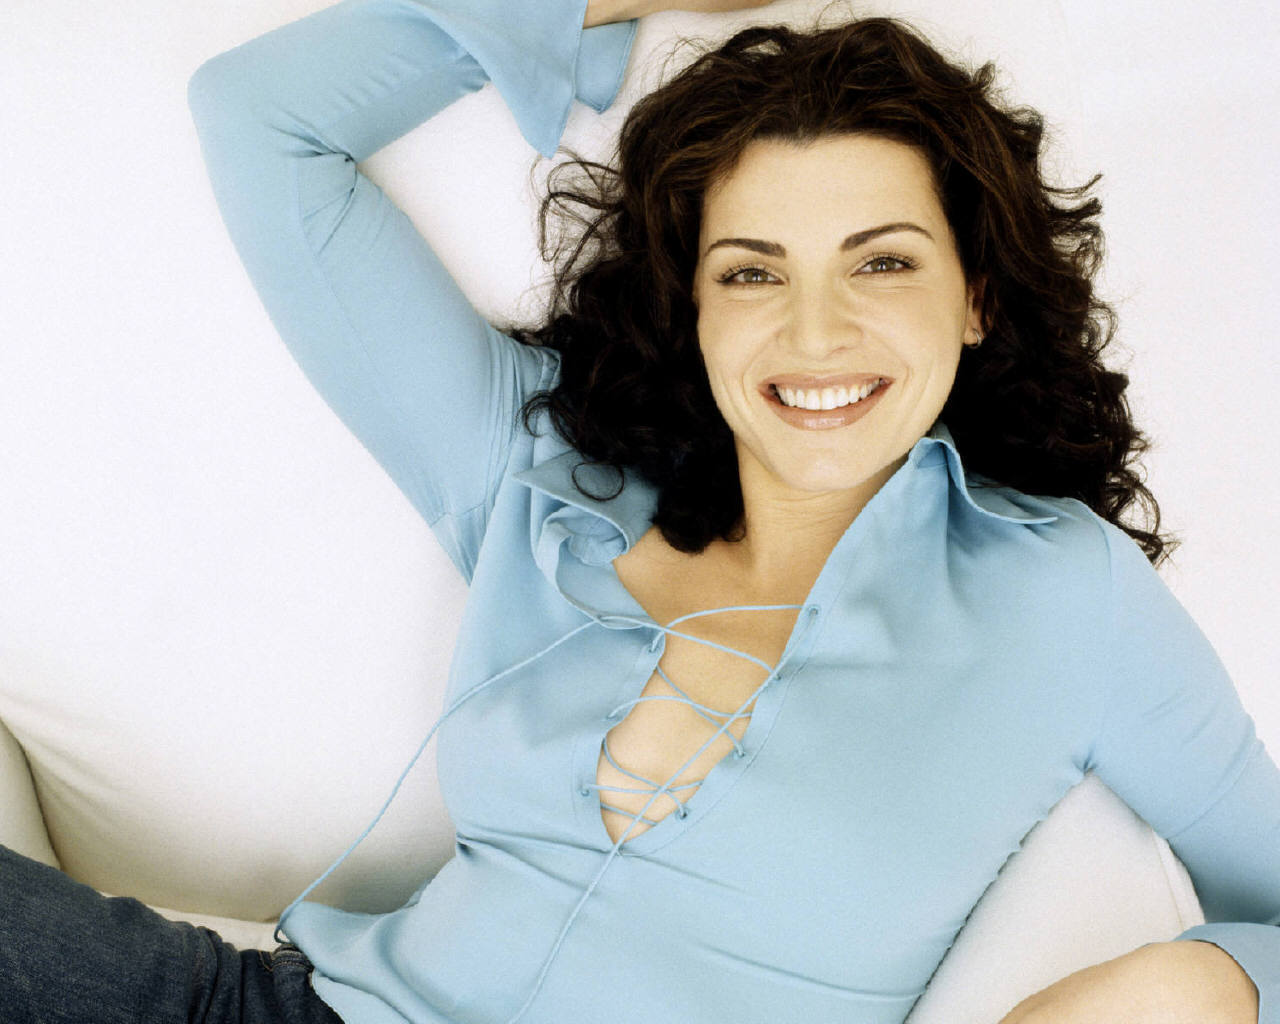 Julianna Margulies for mobile